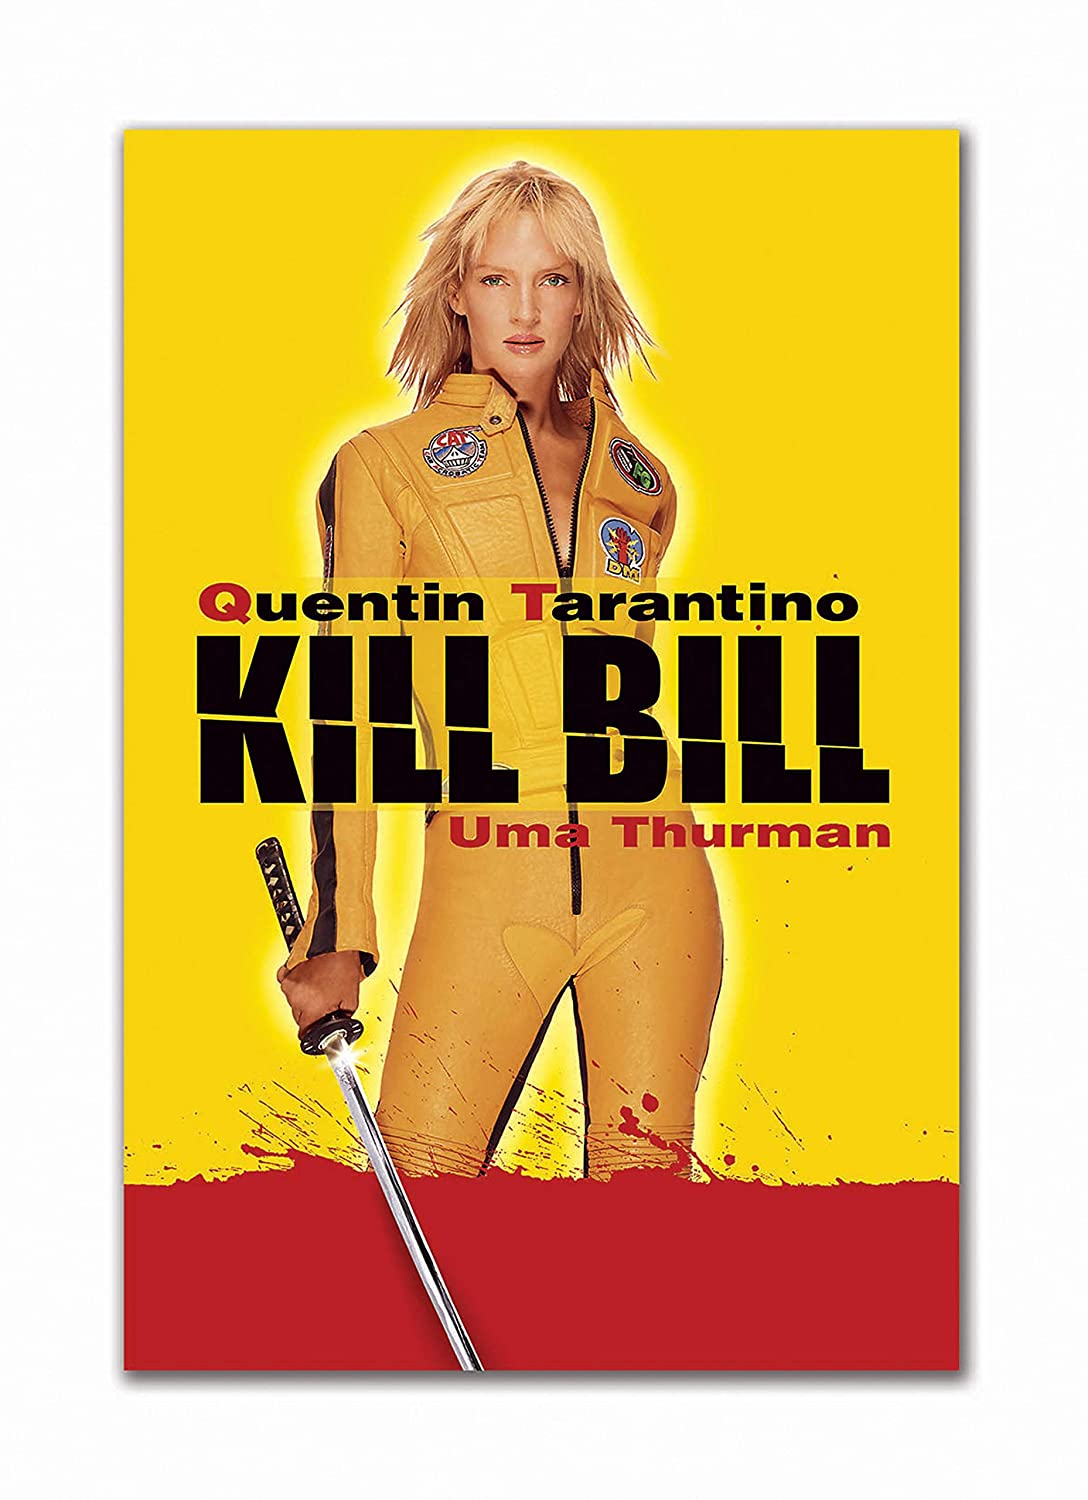 Tamatina Hollywood Movie Poster Kill Bill Volume 1 Crime Film Thriller Large Size Poster Hd Quality 36 Inches X 24 Inches 92 Cms X 61 Cms Amazon In Home Kitchen